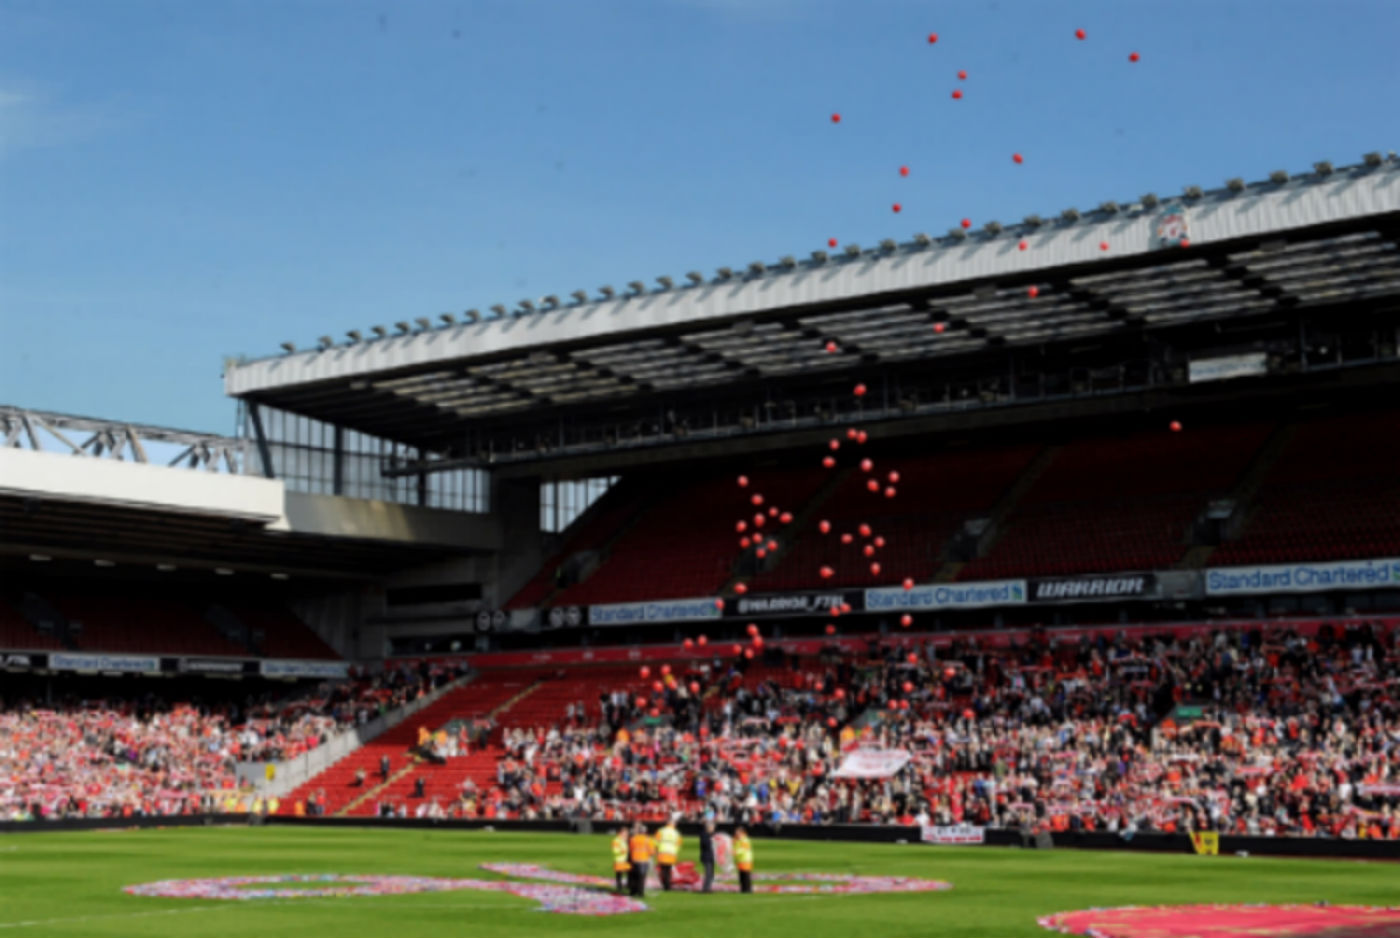 96 balloons, one for each of the fallen, are released at Anfield. (Liverpool FC)